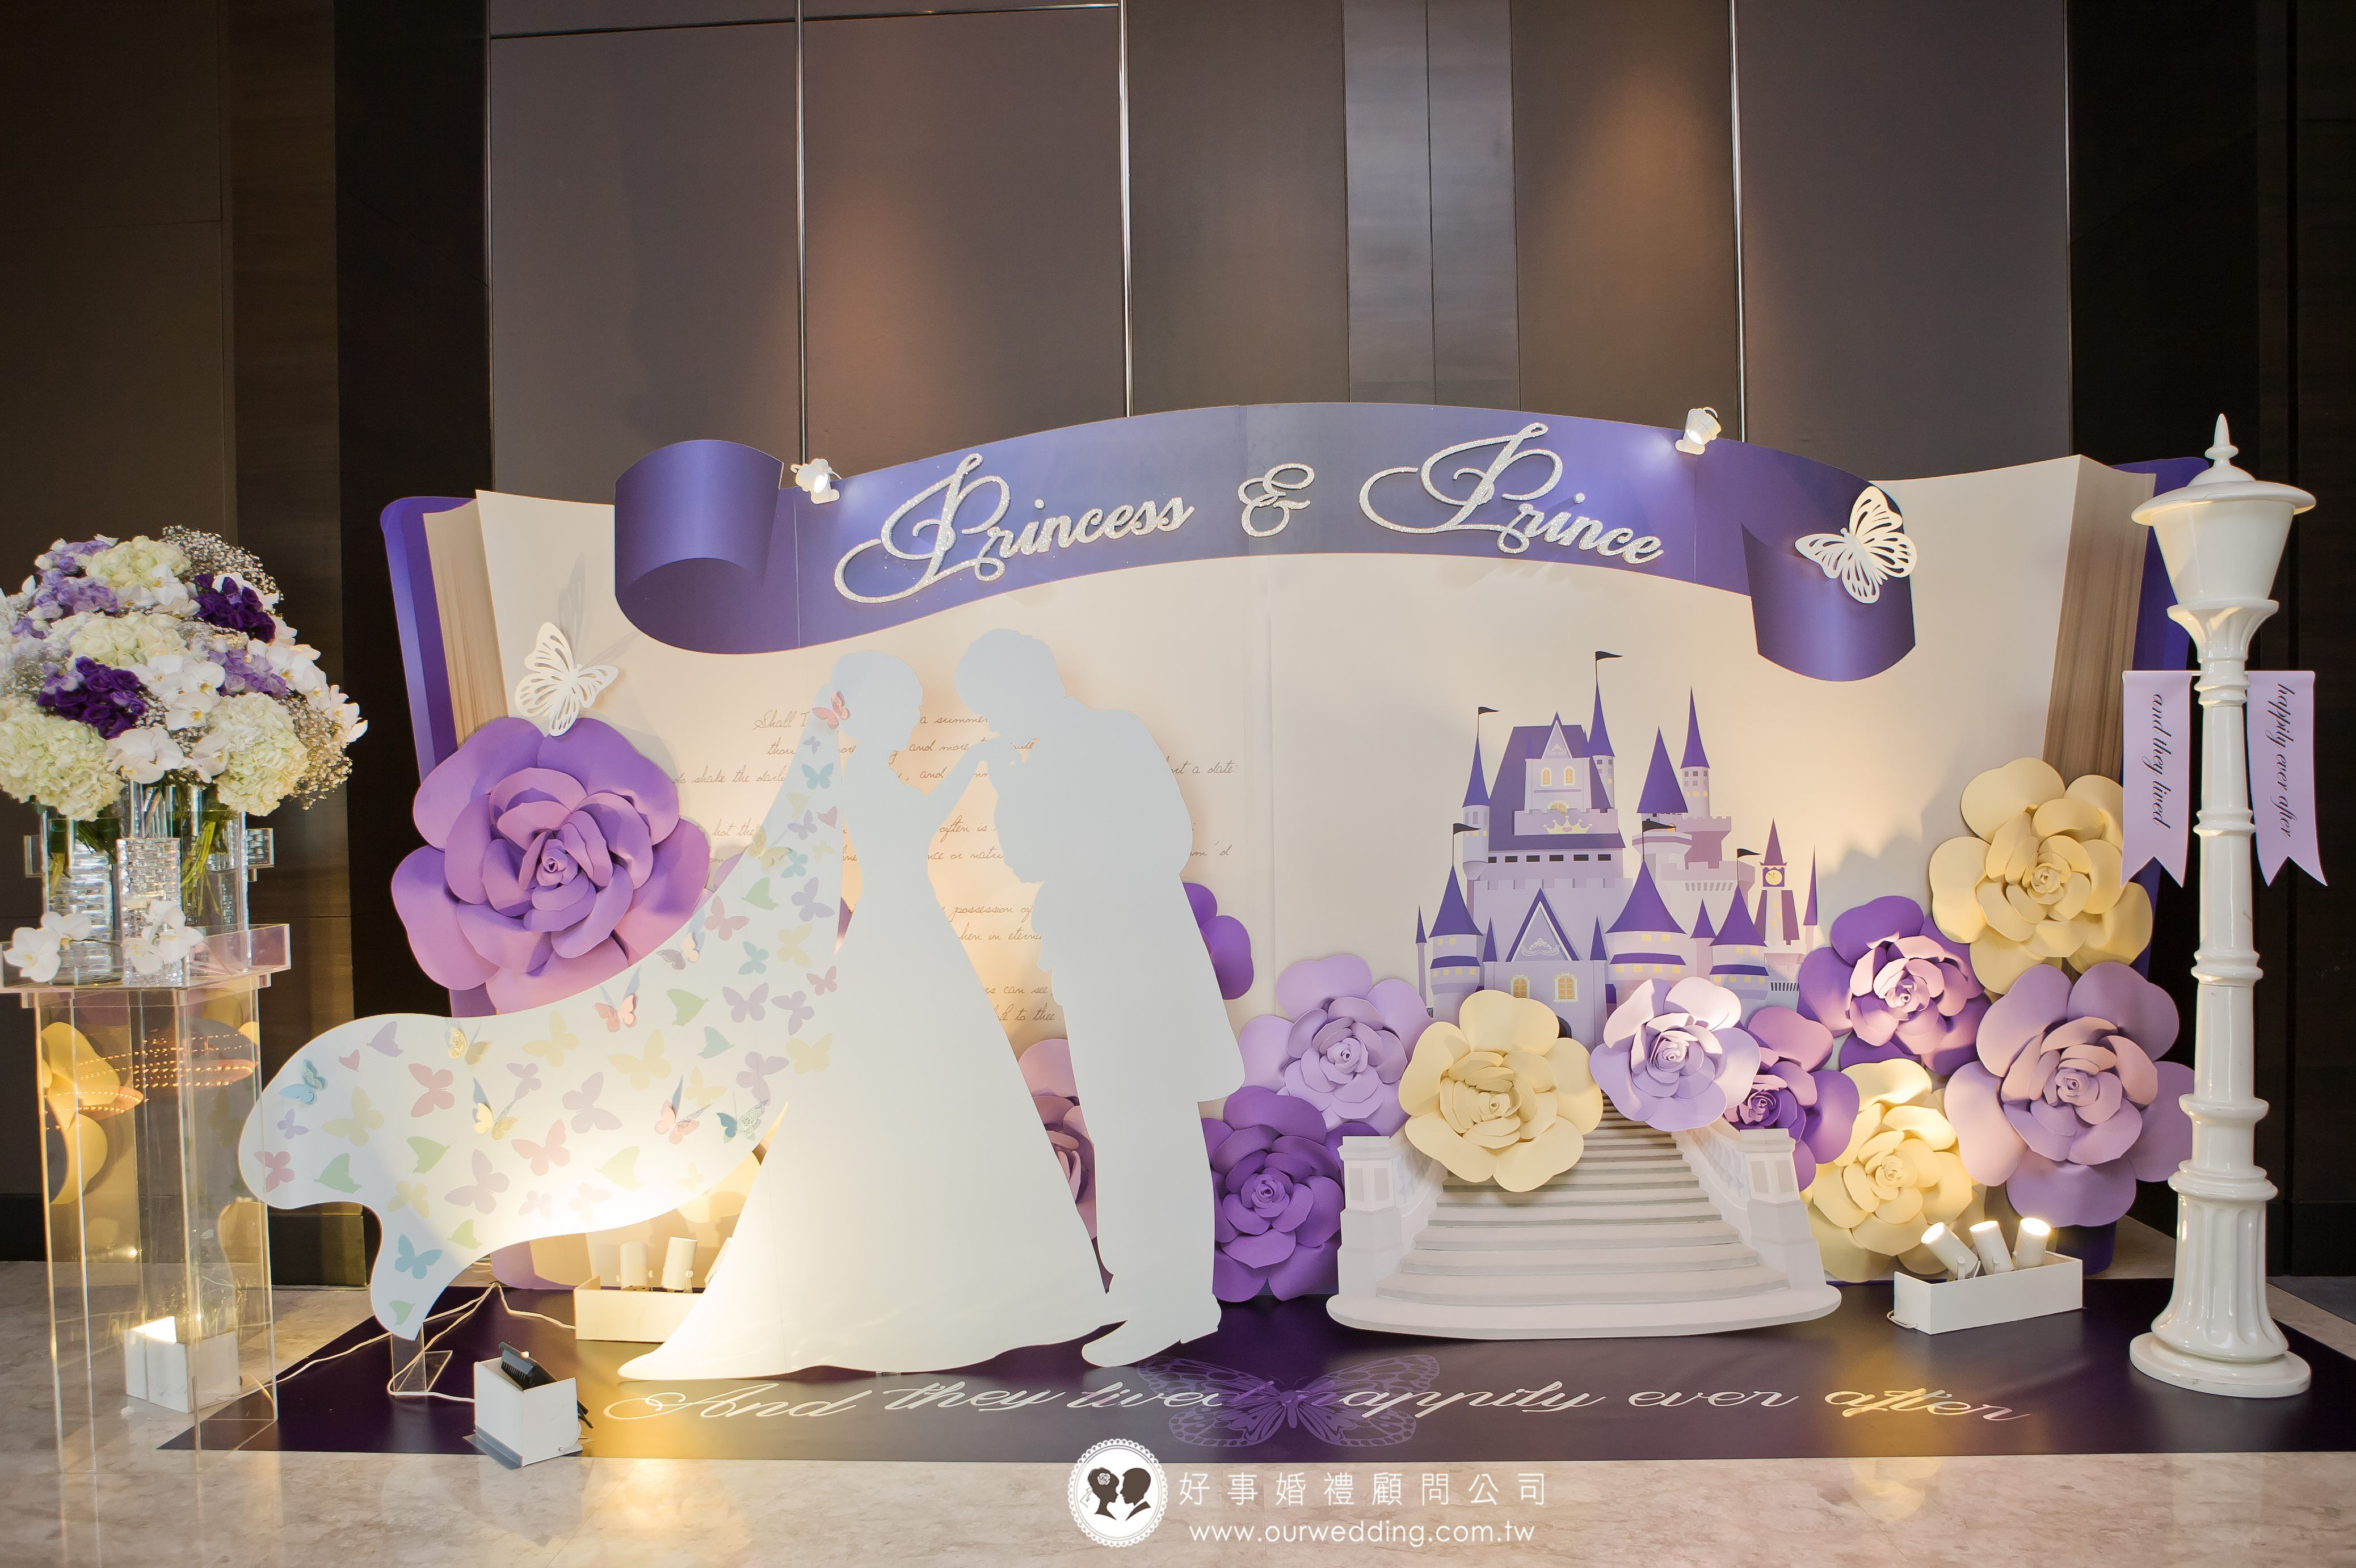 Wedding stage decoration without flowers IMGg   decoraciones  Pinterest  Backdrops